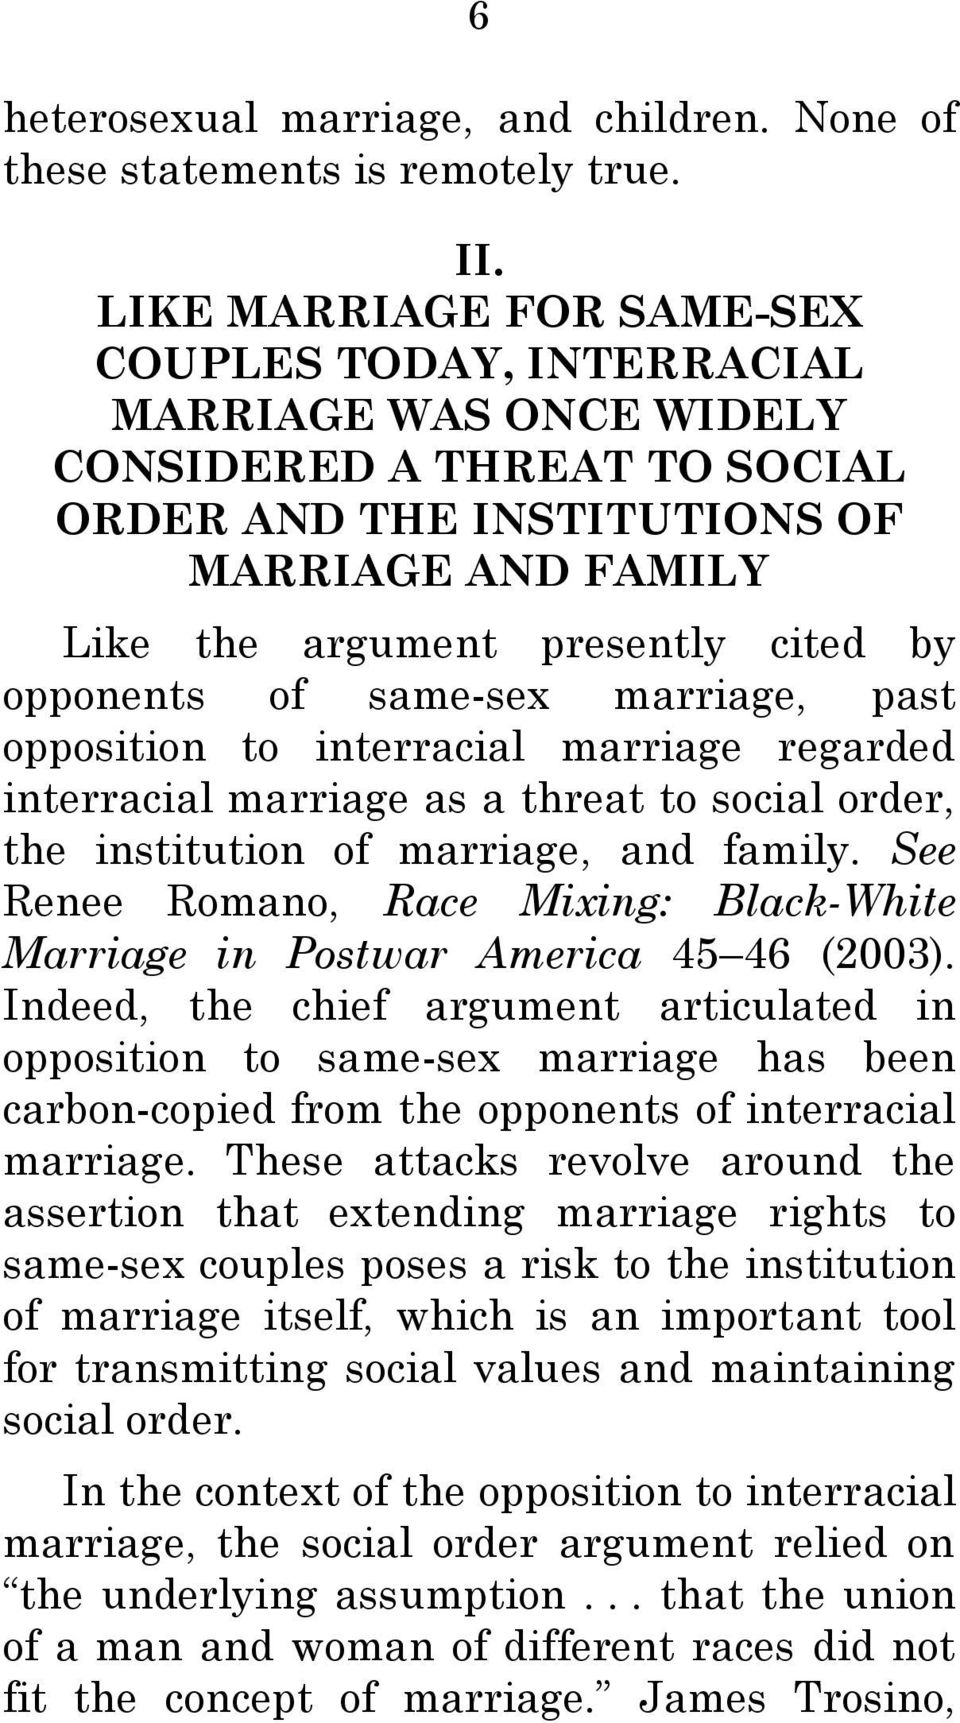 opponents of same-sex marriage, past opposition to interracial marriage regarded interracial marriage as a threat to social order, the institution of marriage, and family.